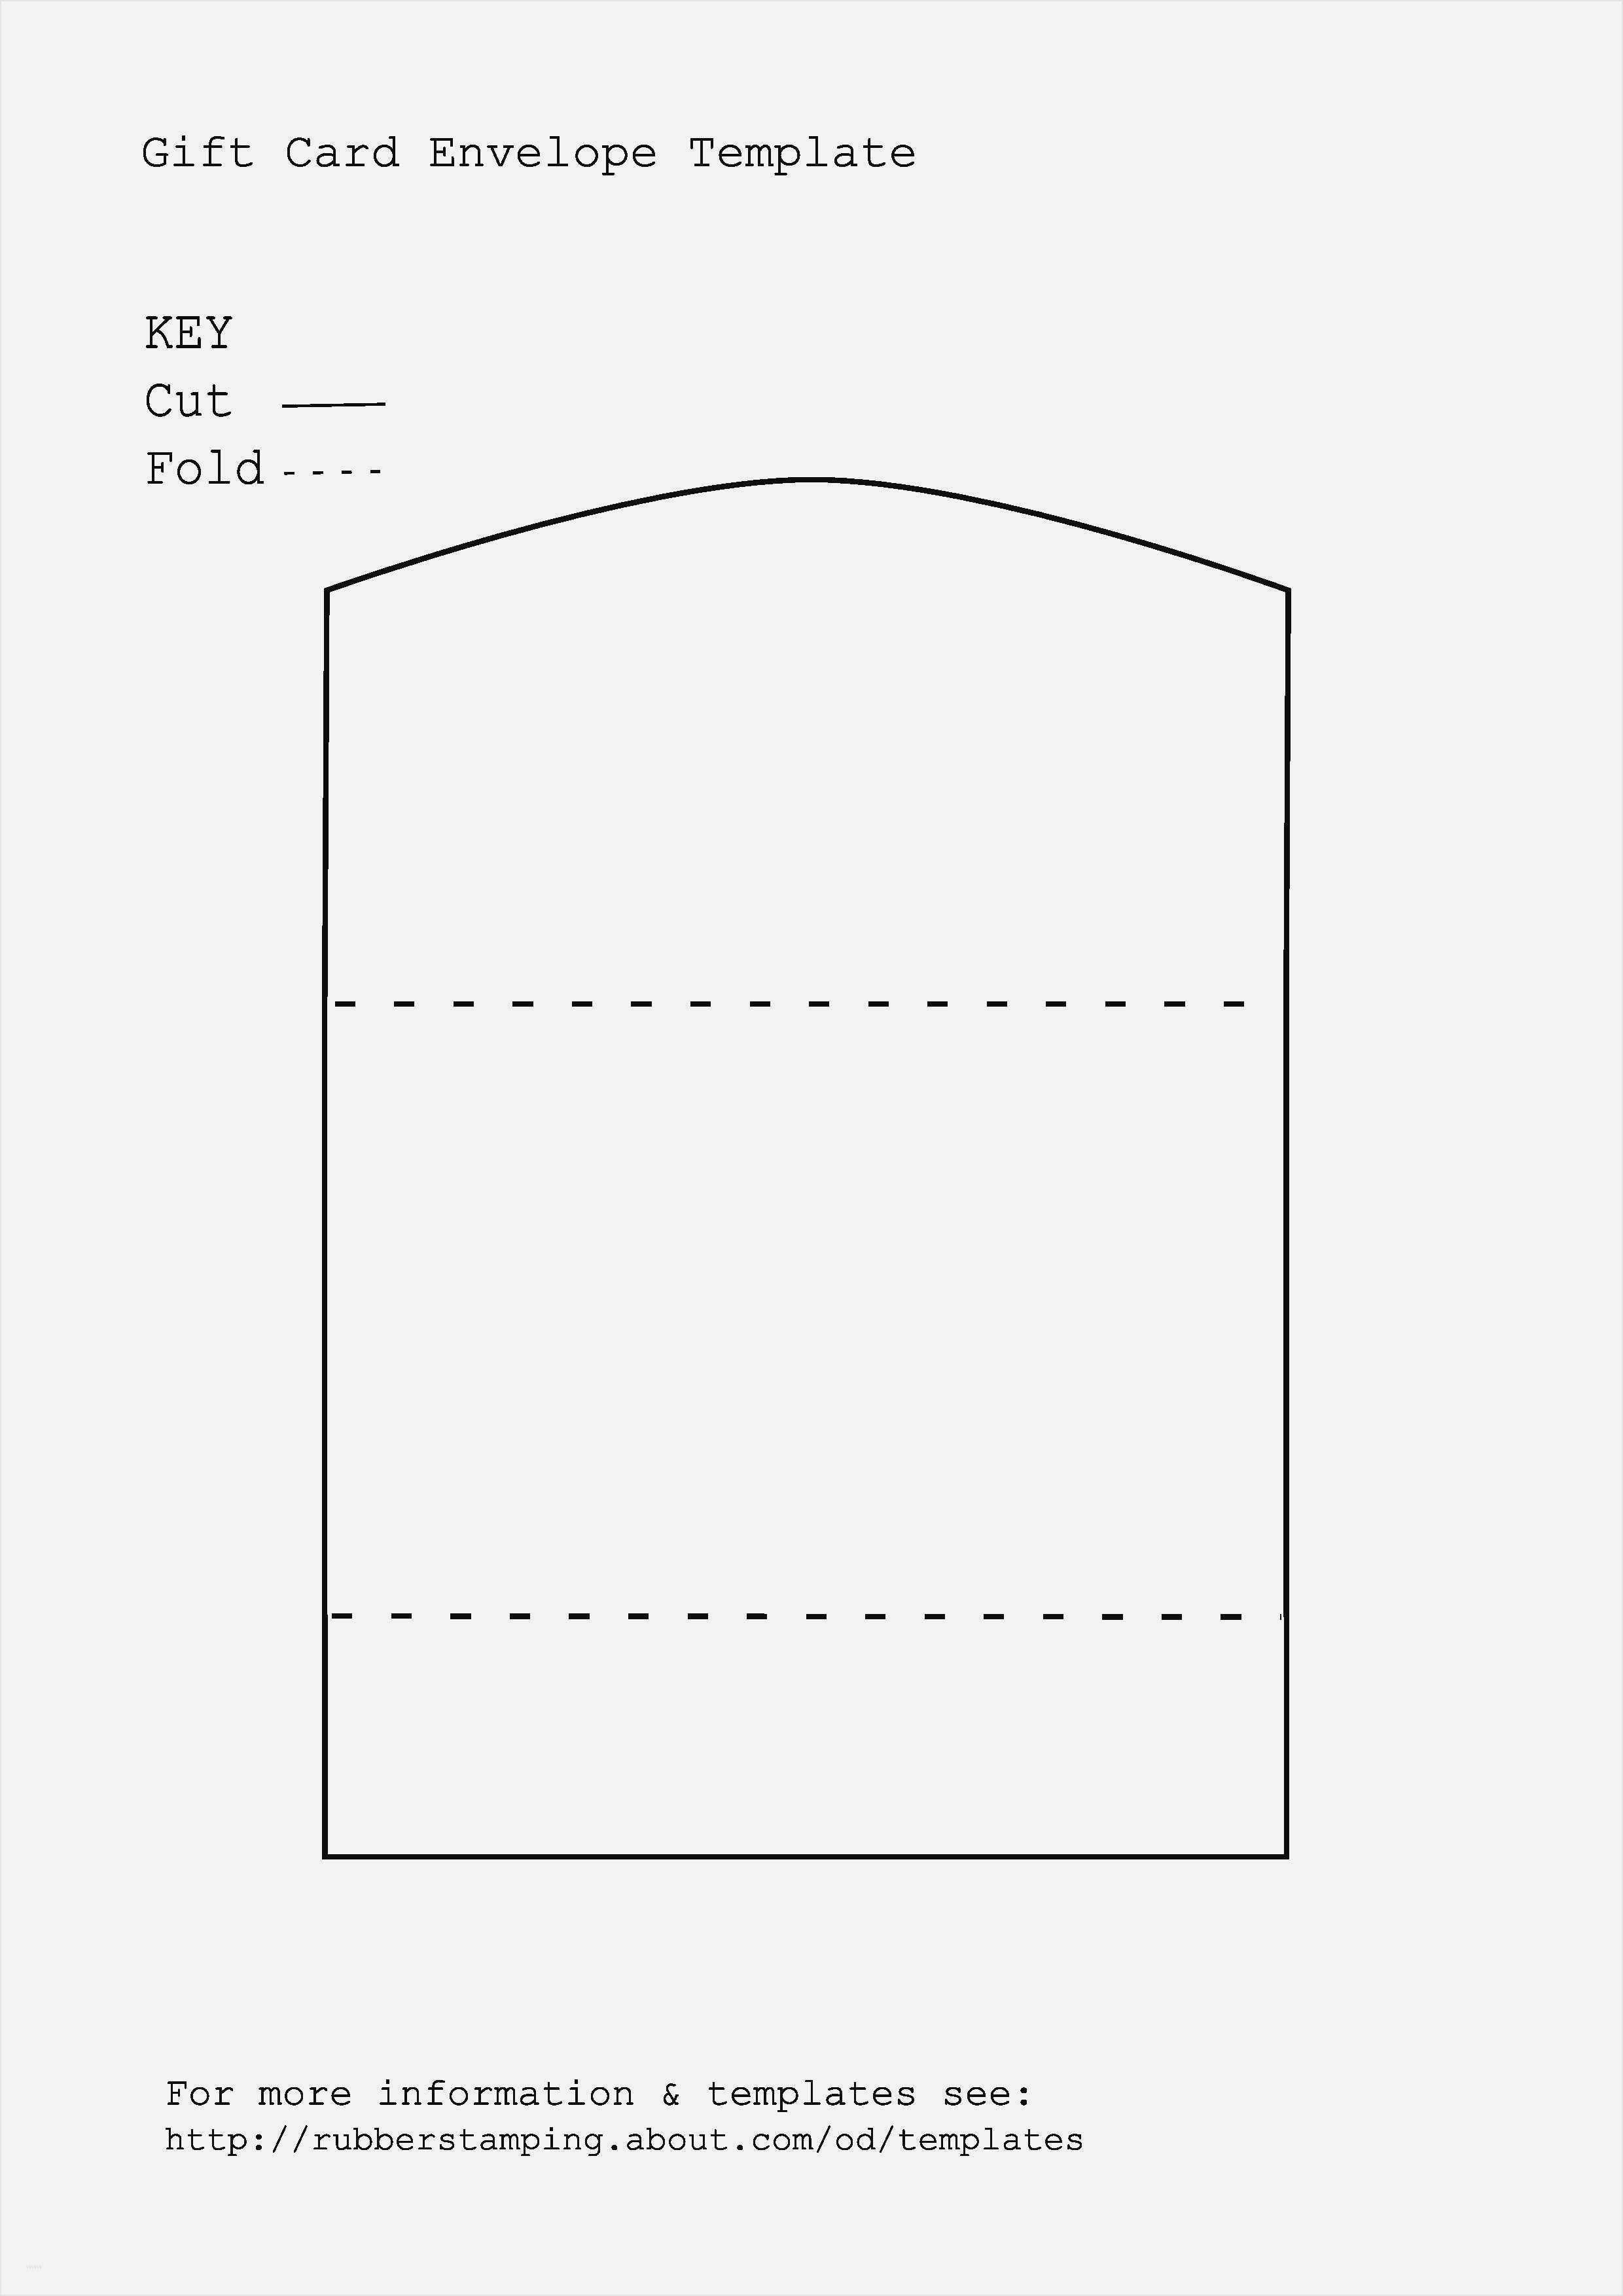 010 Gift Label Template Awesome Free Printable Tag Templates For - Free Printable Label Templates For Word